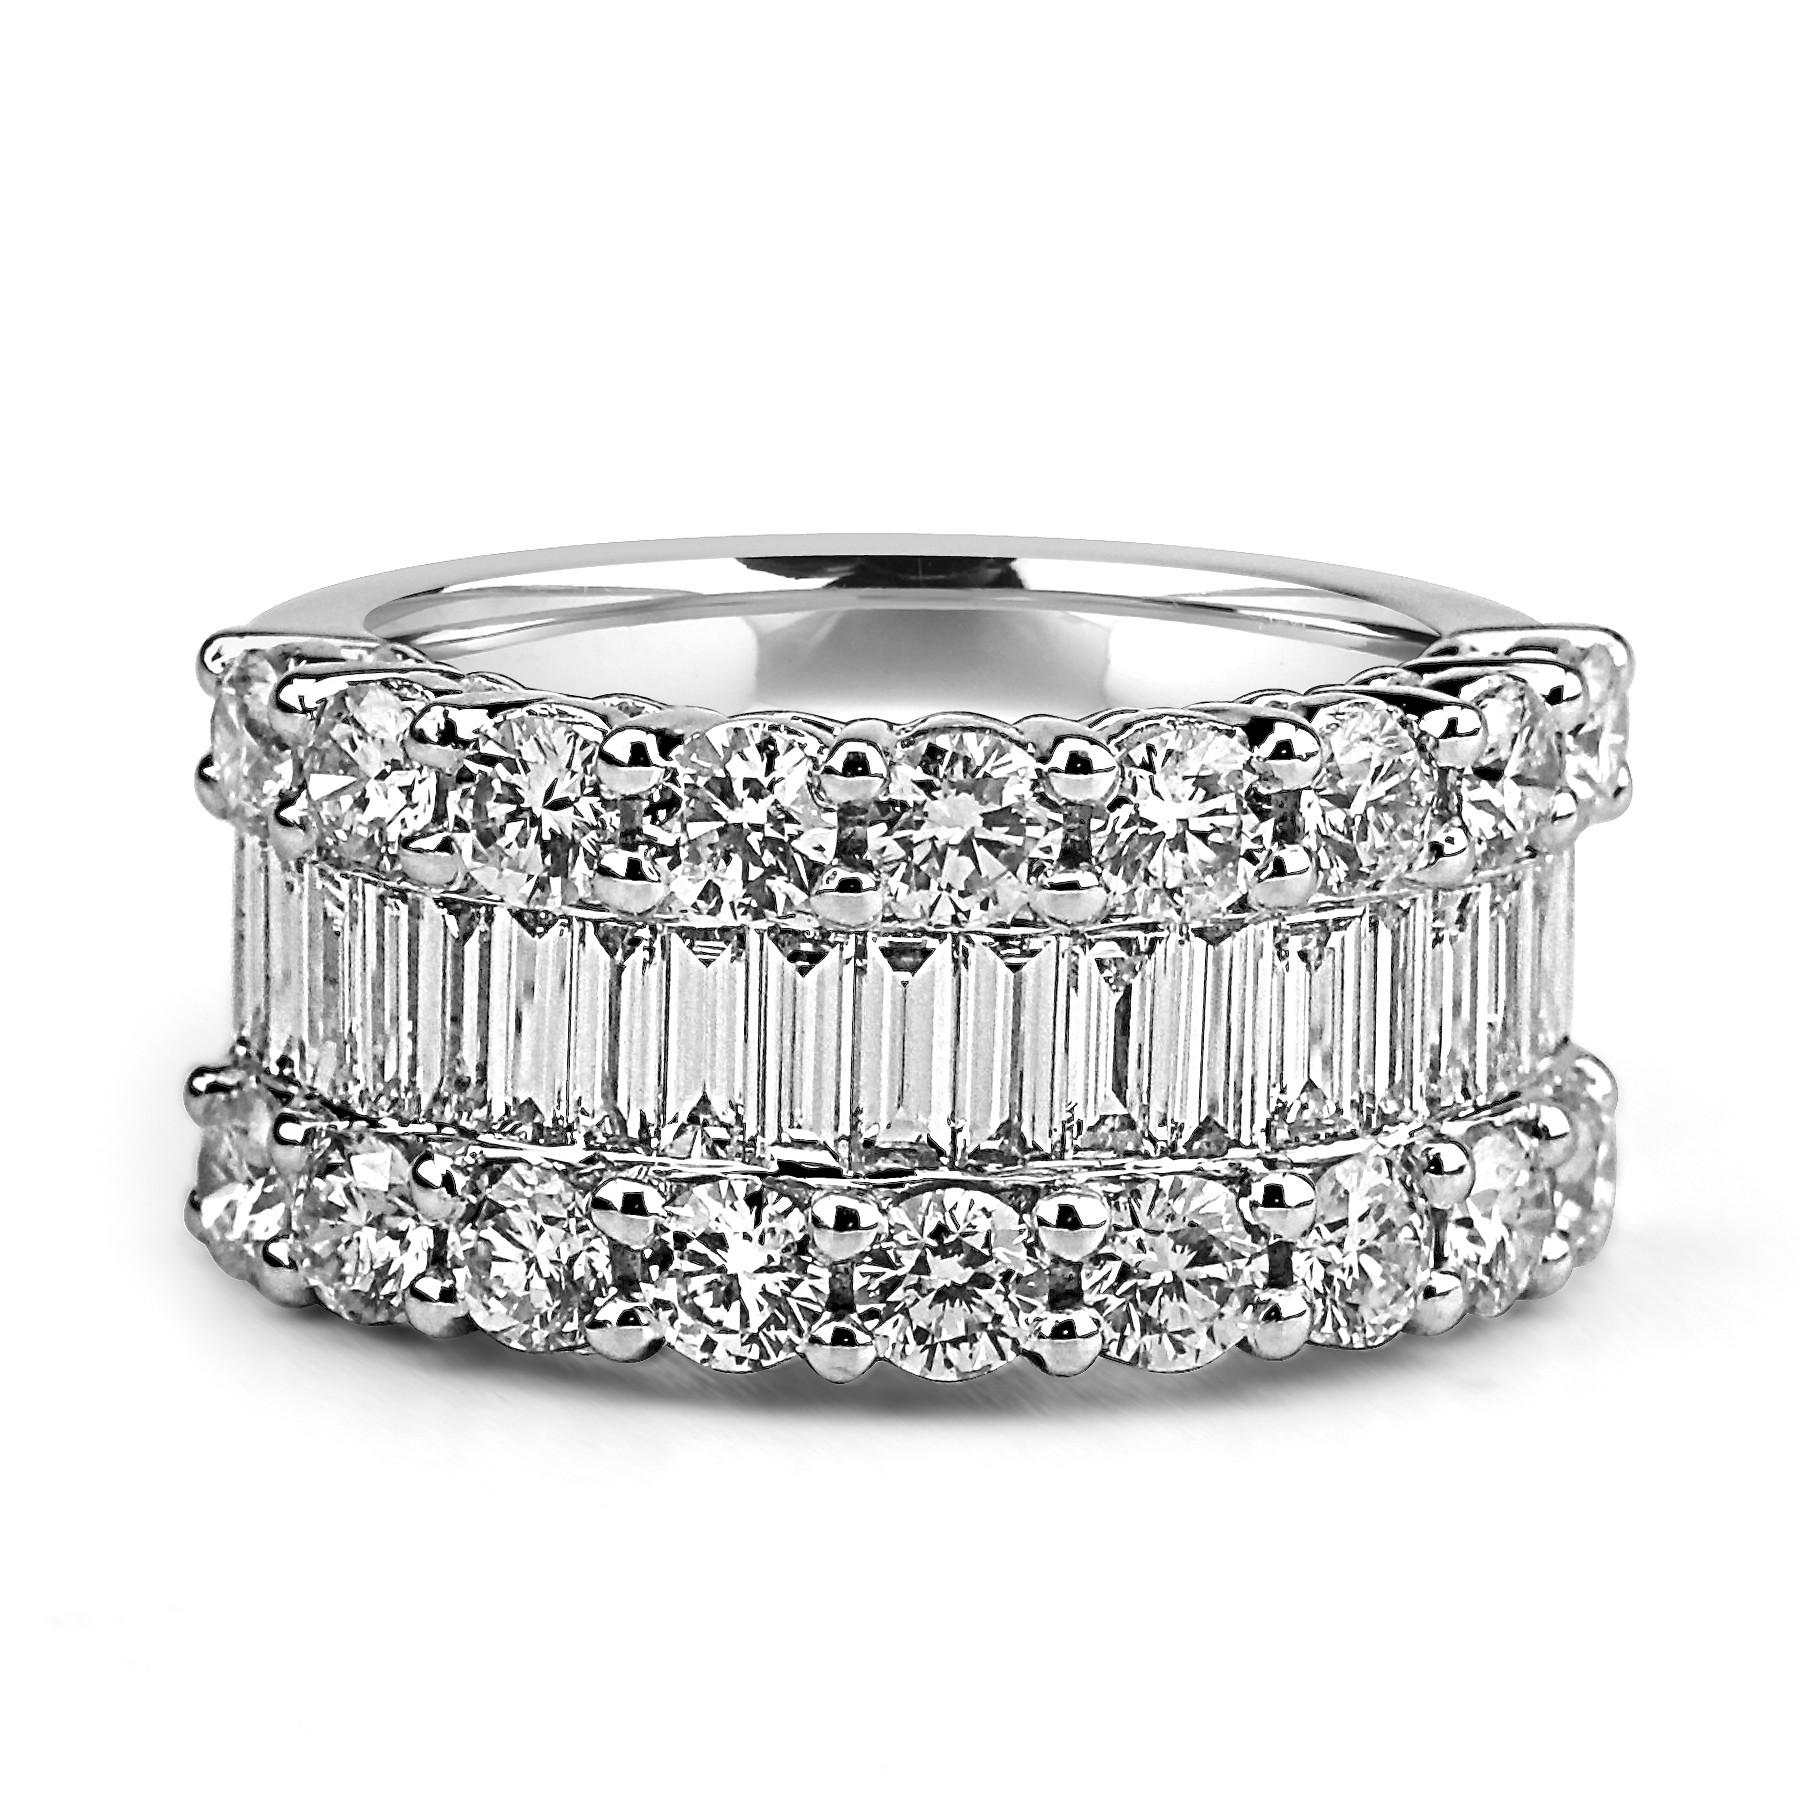 w i ring and wedding t baguette band ct bands princess white pin round gold platinum diamond in